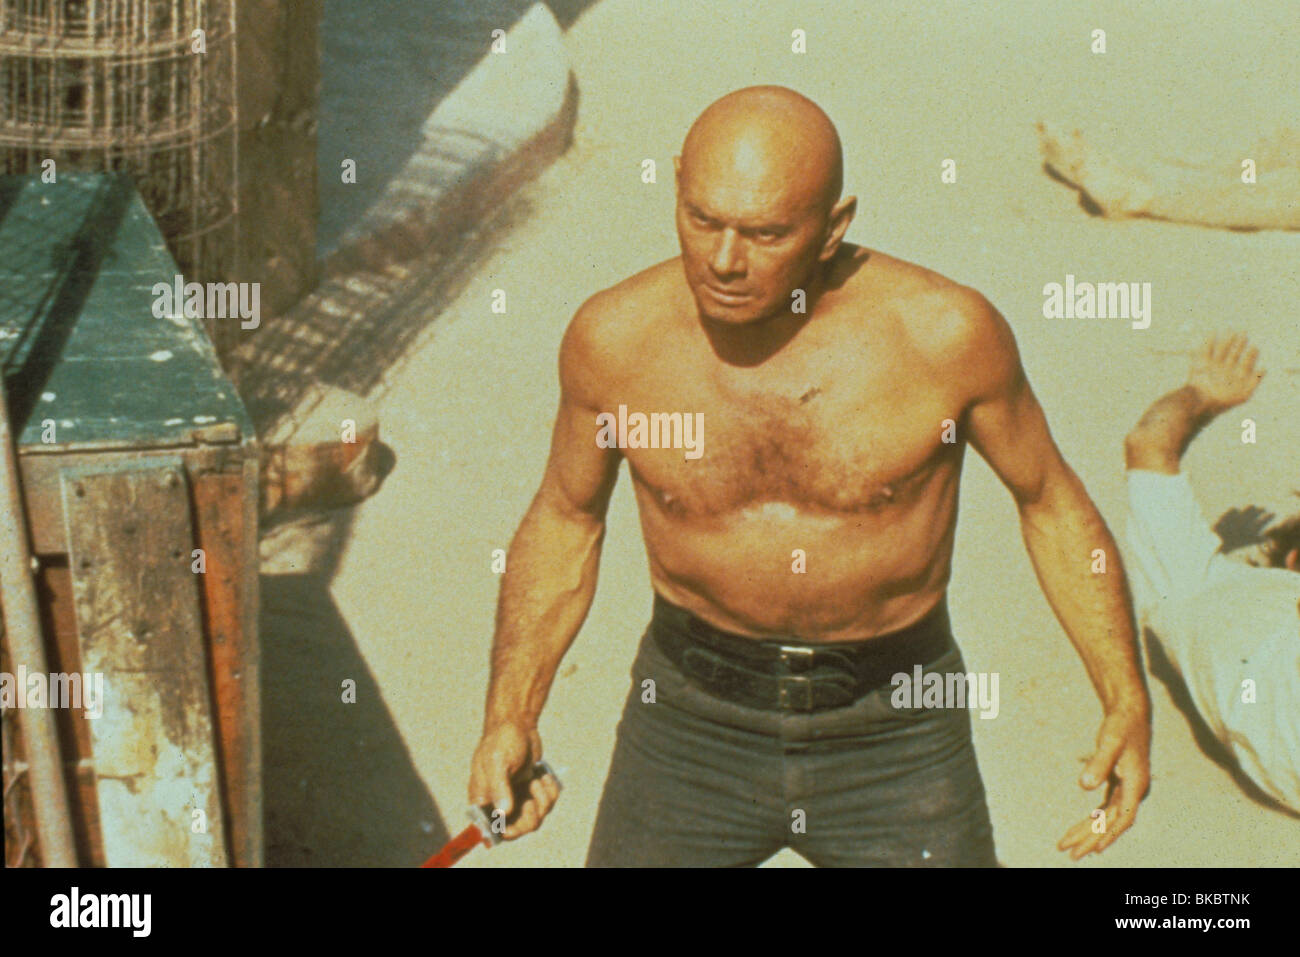 DER ULTIMATIVE KRIEGER (1975) YUL BRYNNER ULW 014 Stockbild